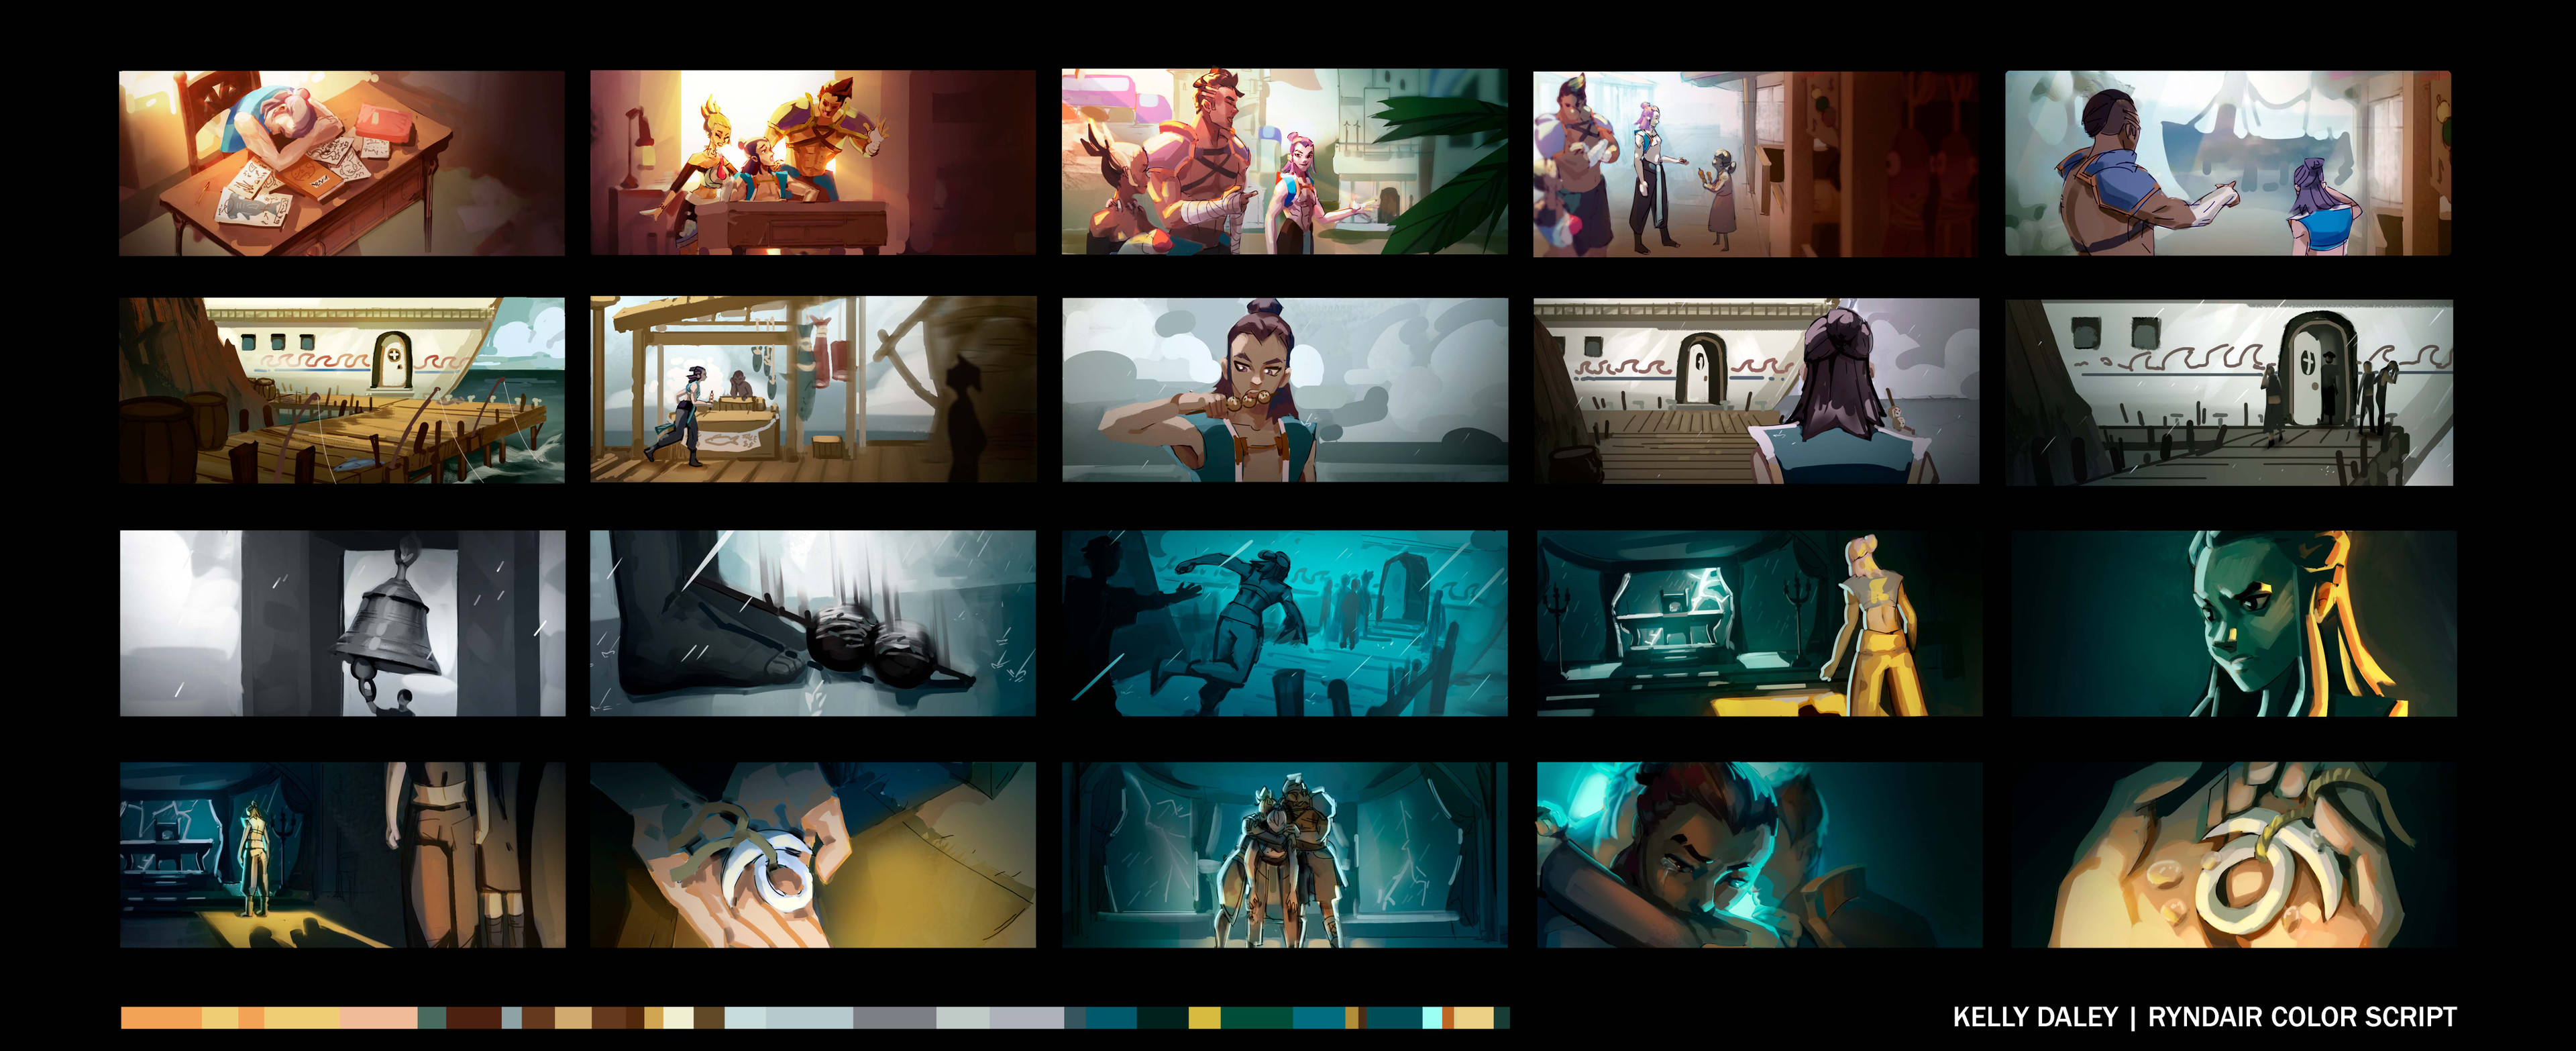 Color Script for a scene within the Ryndair universe.